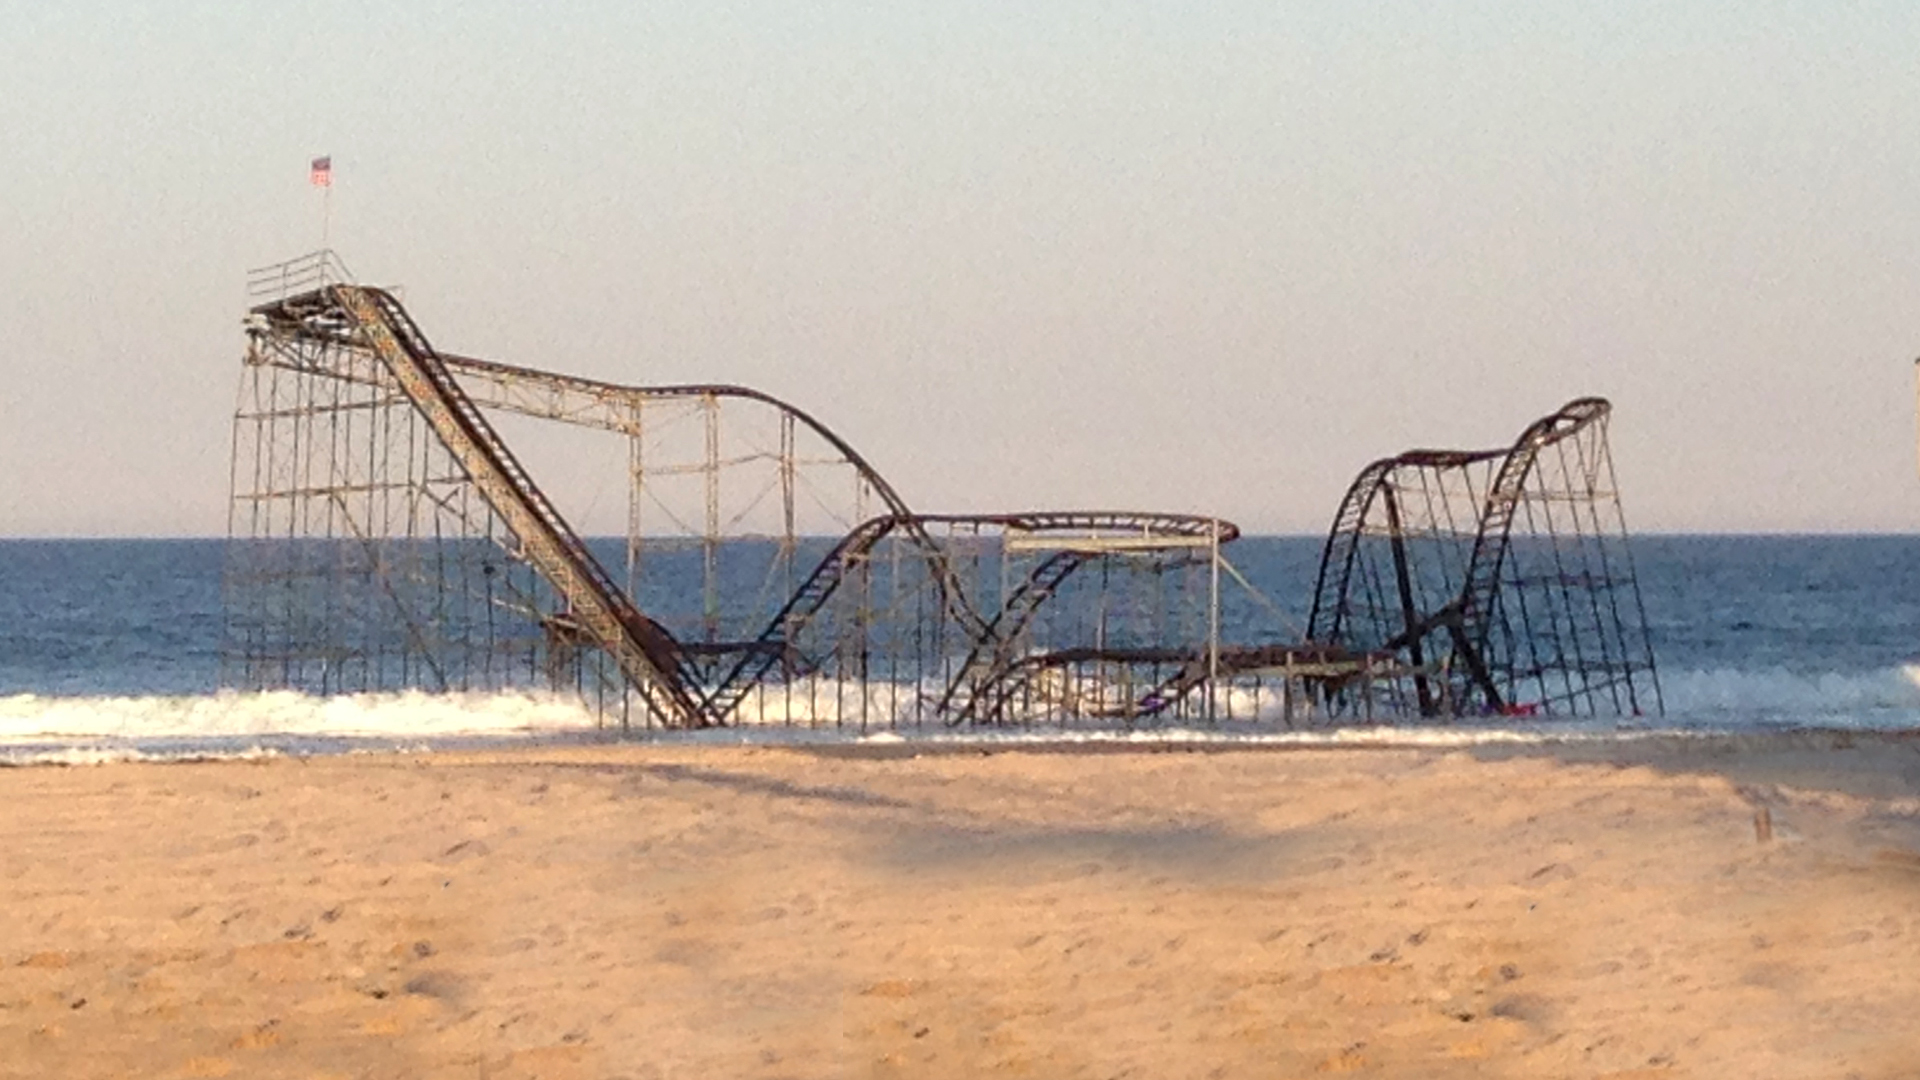 Seaside Heights, NJ, Spring 2013